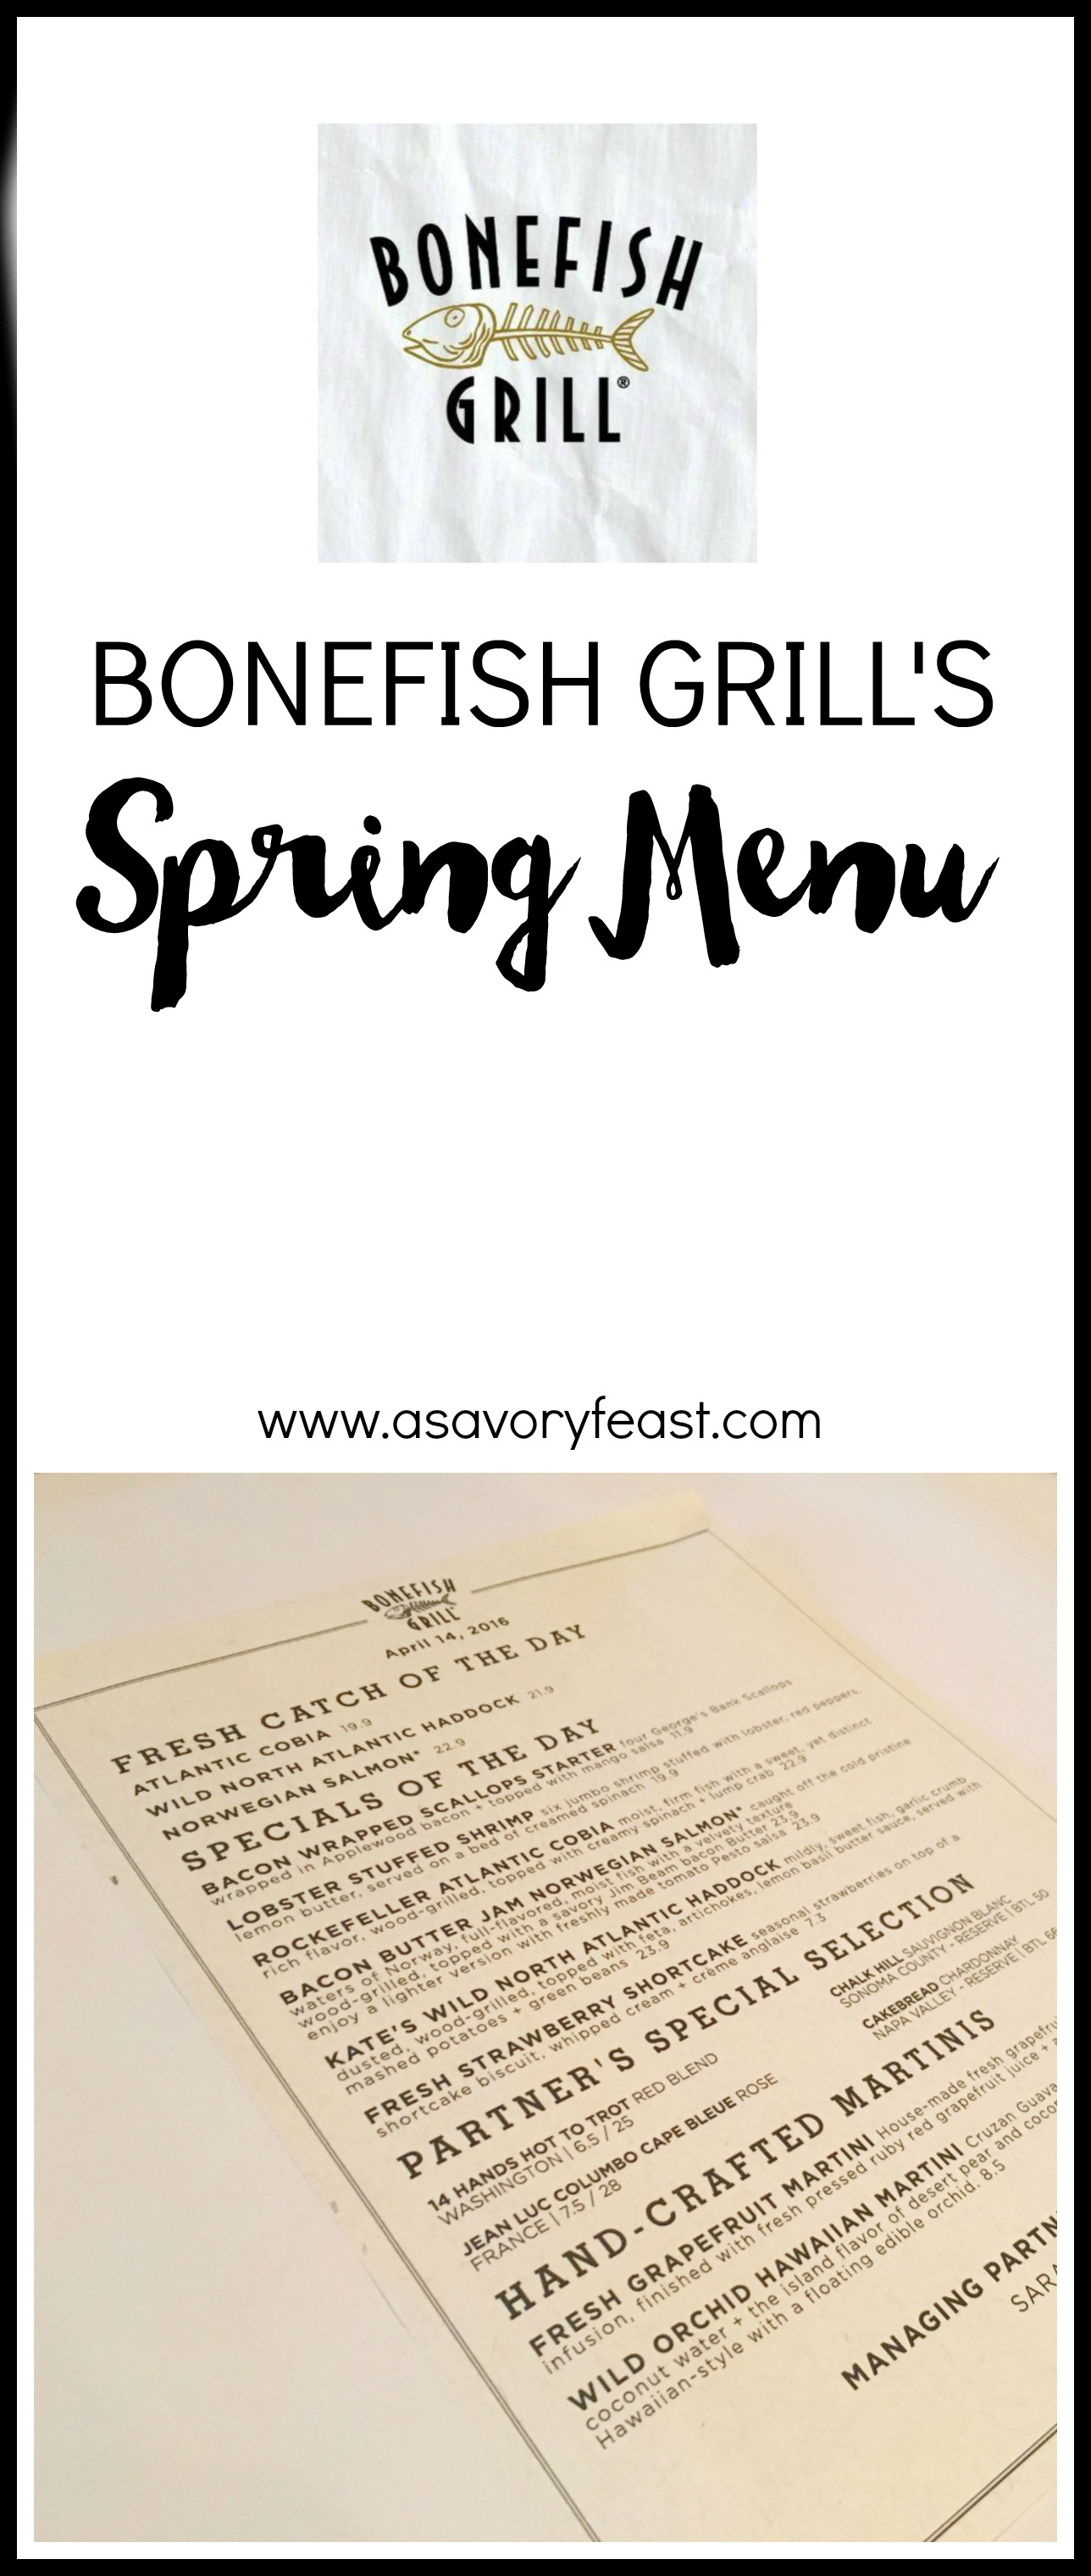 Take a look at Bonefish Grill's Spring Menu! The food blogger behind A Savory Feast shares her experience.